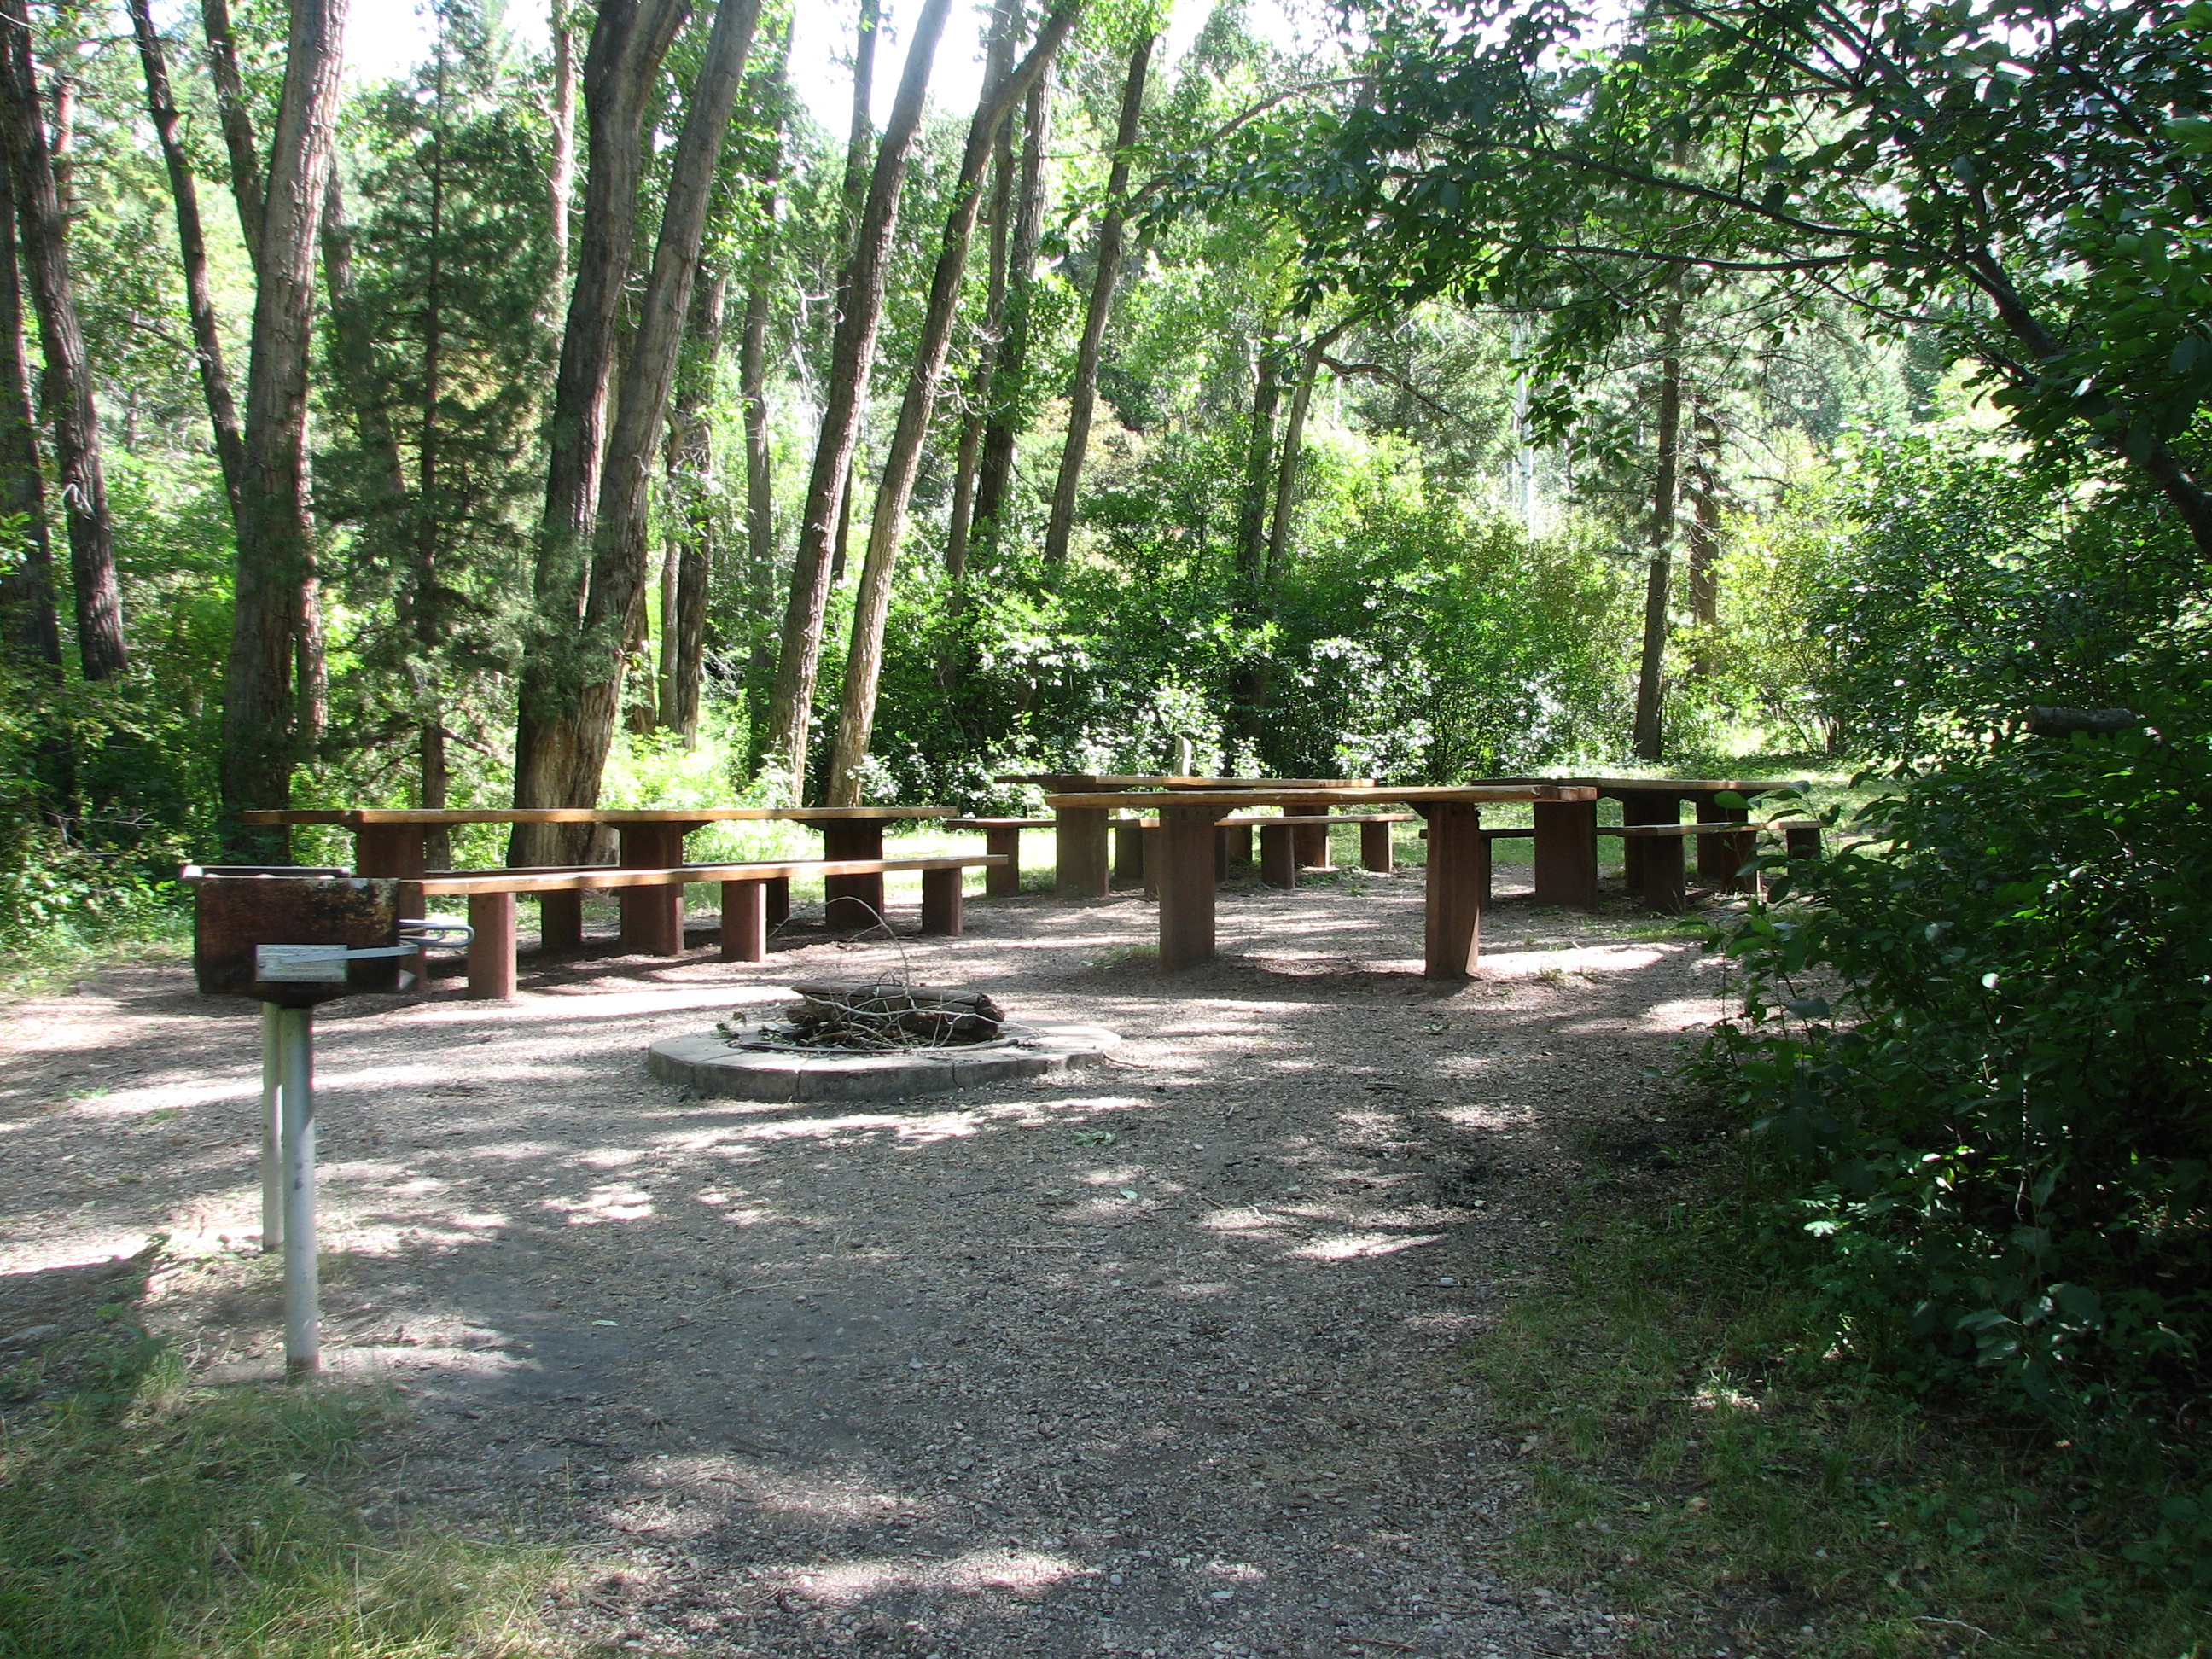 Photo of a site at the Palisades Picnic Area.